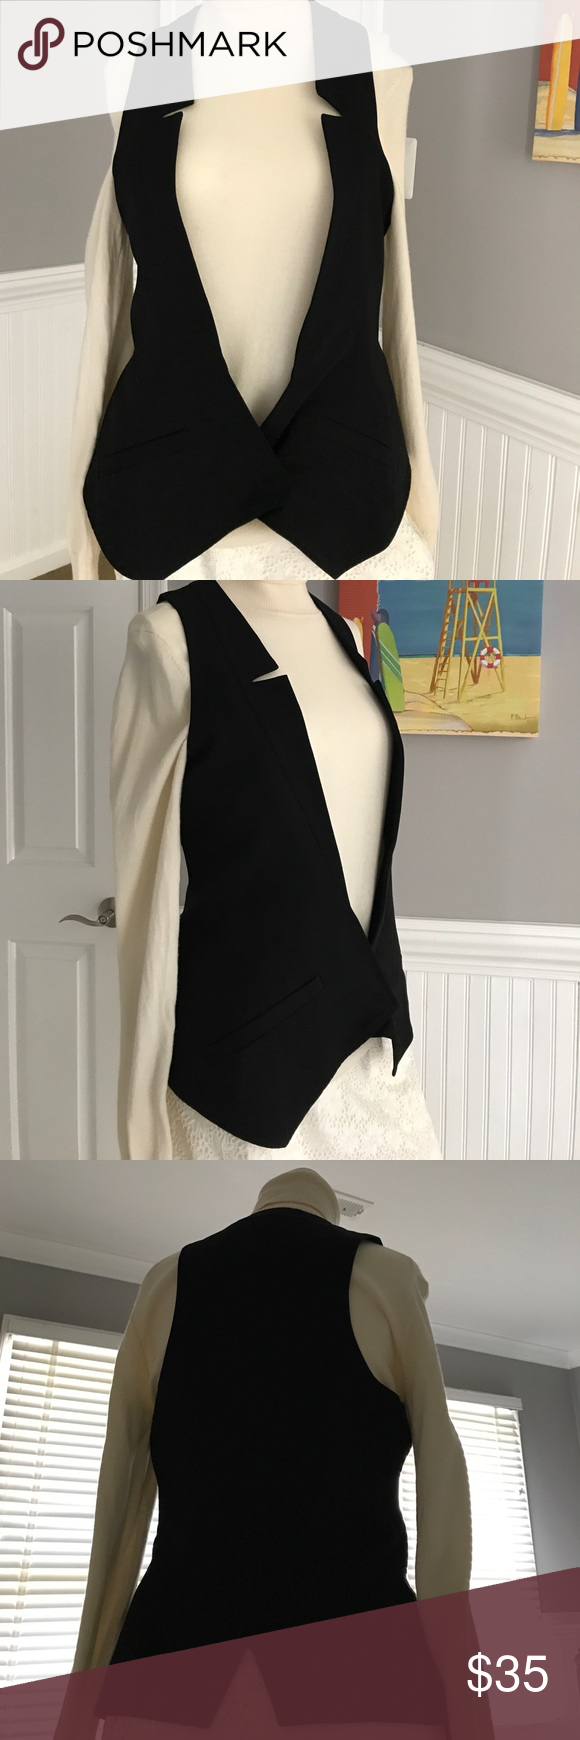 Sleek & Chic Vest by Alvin Valley This is the perfect addition for any fashionista's closet- such an unusual piece! Smartly tailored with a slimming siluette accentuating the waist. The front is slightly cut longer than the back, front pockets are still closed. One button close, great open or closed.Sleek & stunning. Top is cotton, lining is luxurious silk, color is black, no flaws- in fabulous condition! By NYC designer Alvin Valley. Sold at high end stores and boutiques. Size 6. Pit 2 pit…